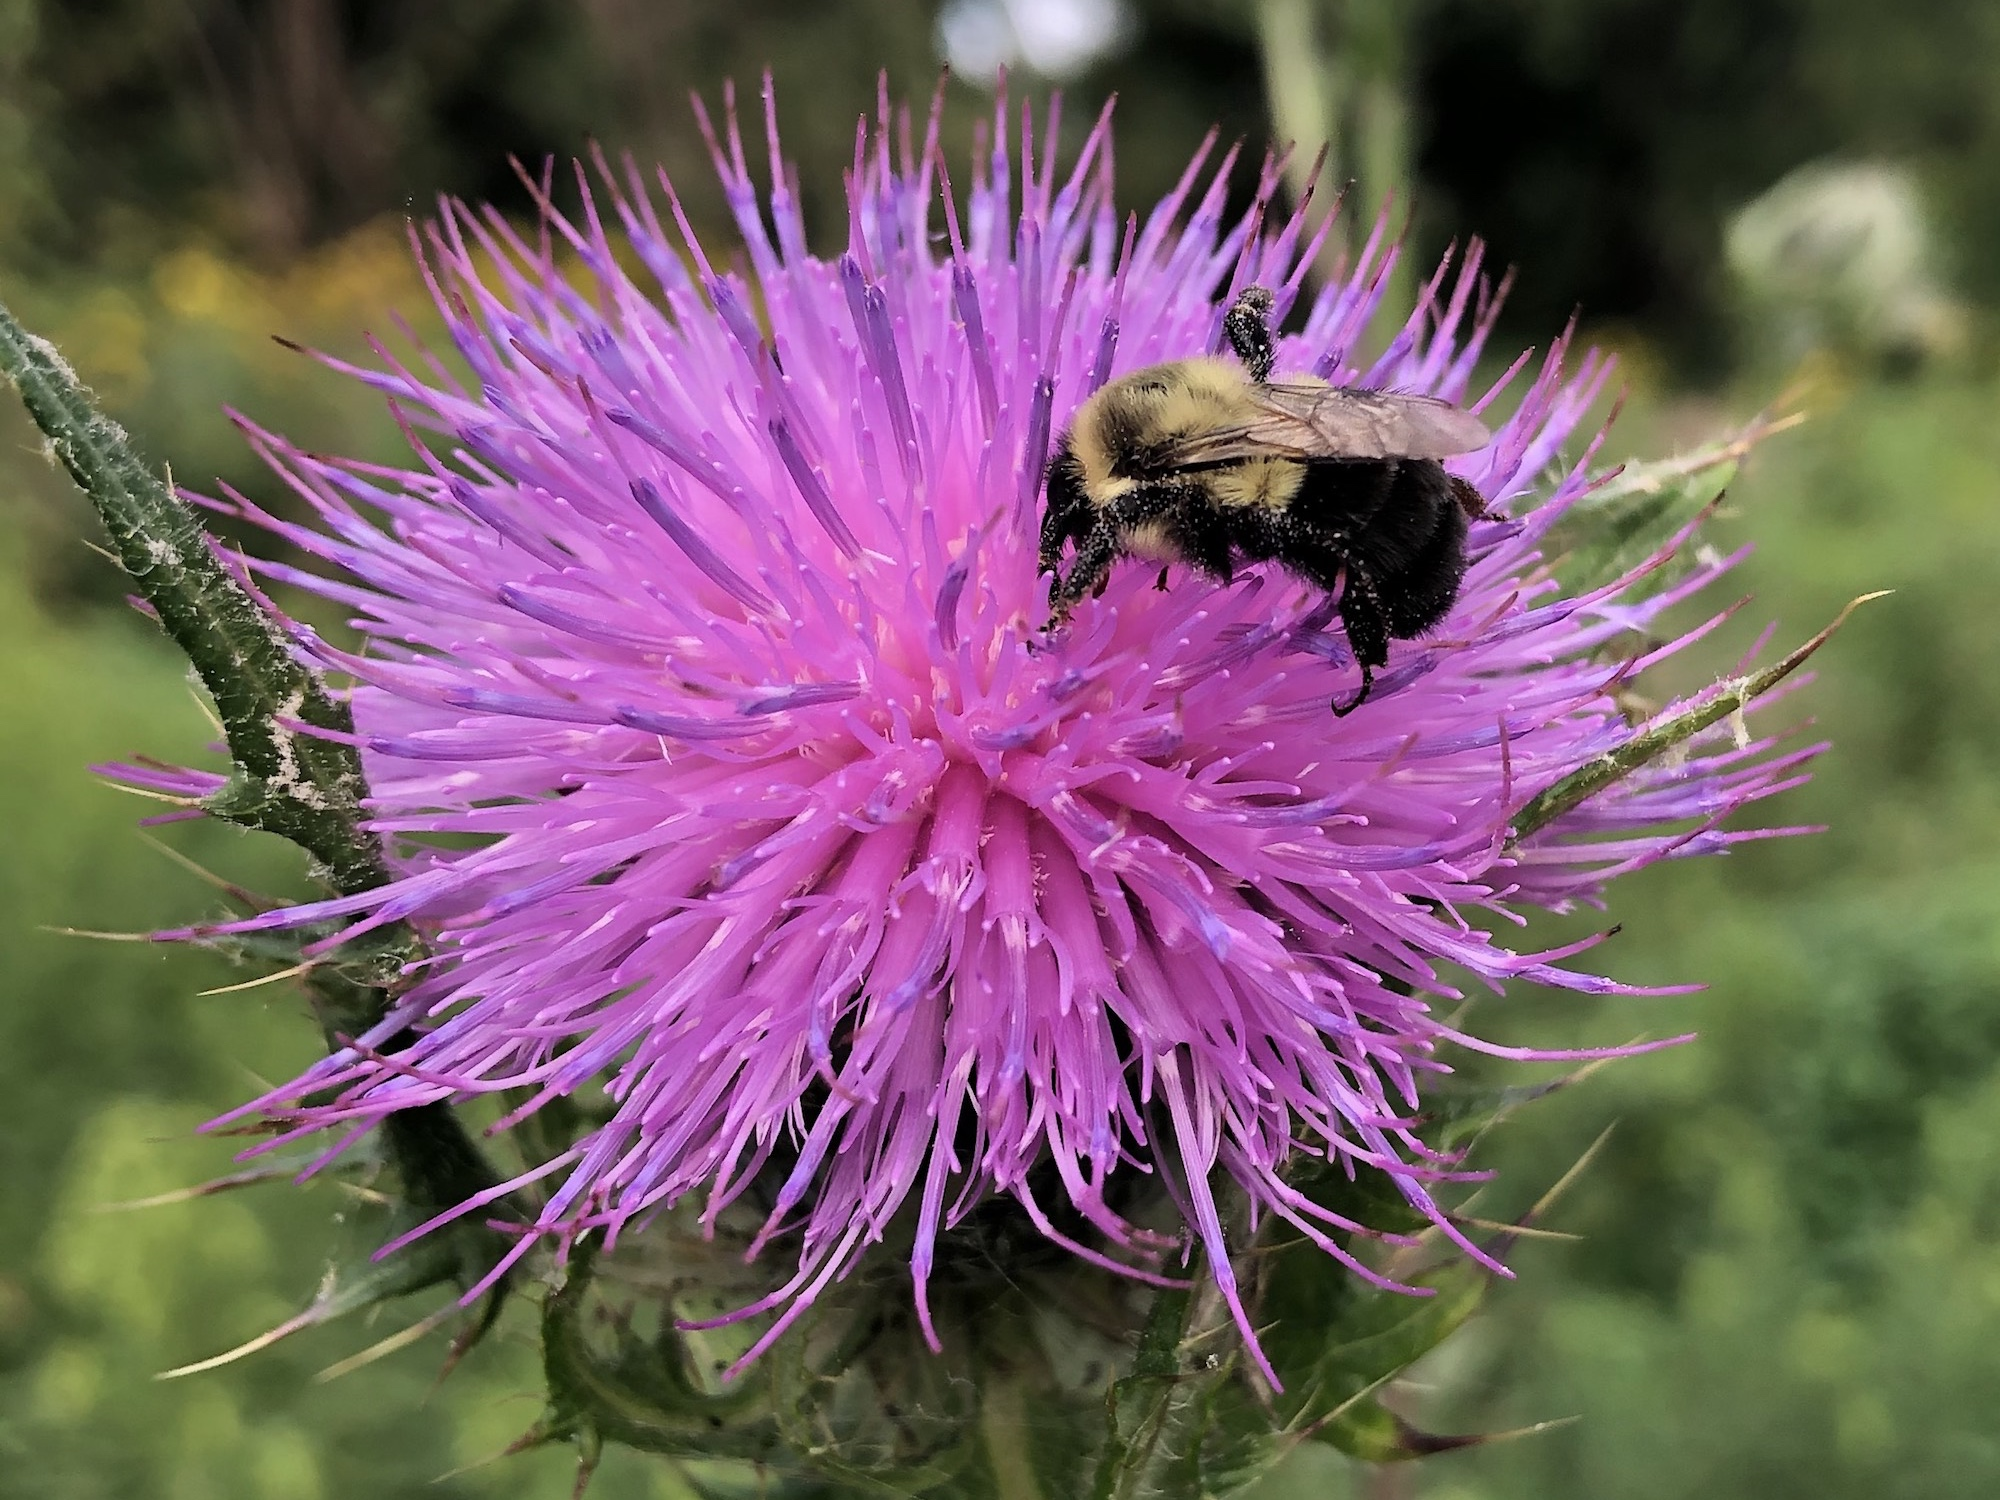 Bumblebee on Thistle on August 6, 2020.